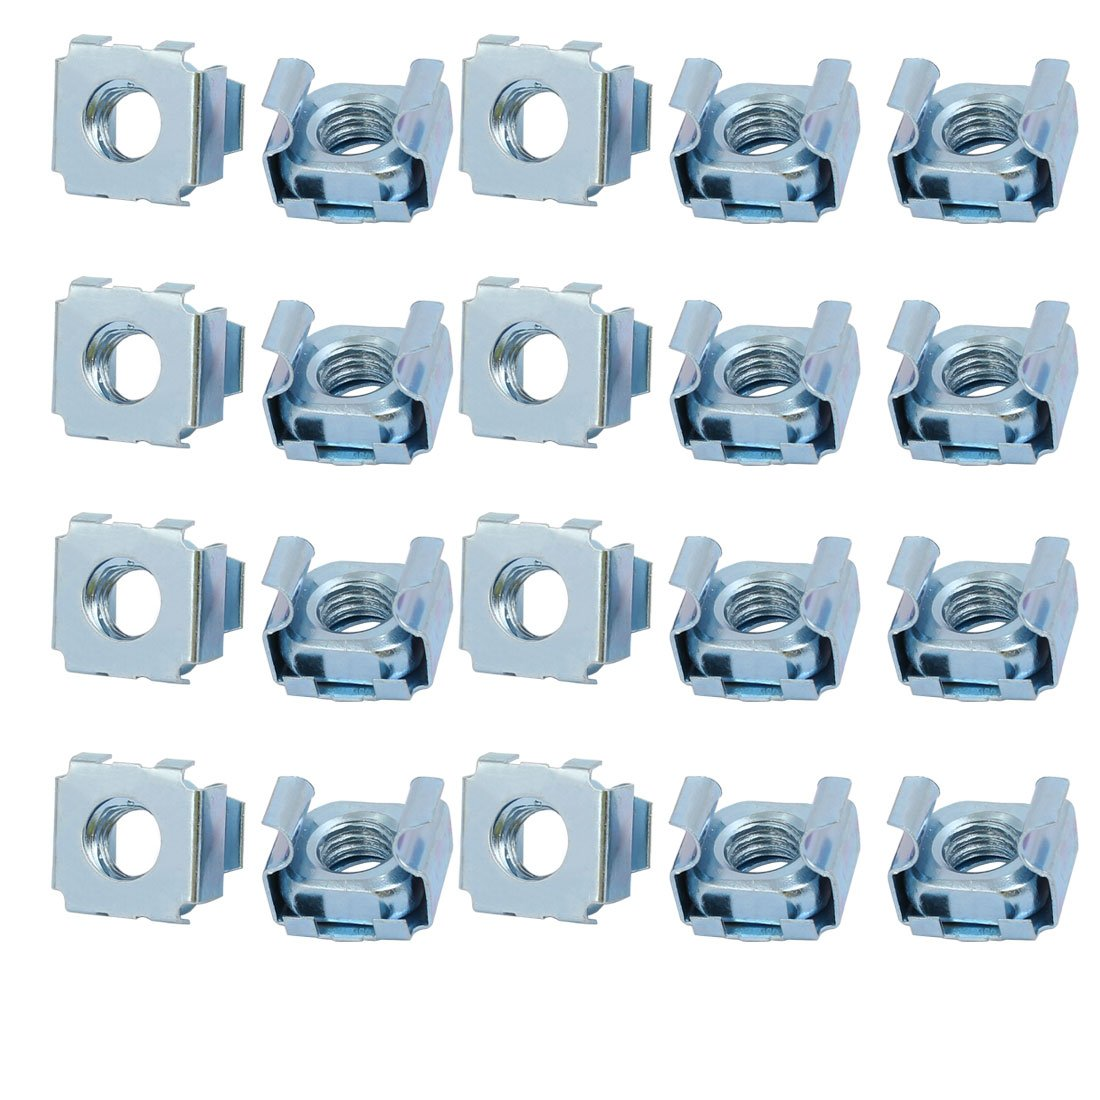 Sourcingmap® 20pcs M8 65Mn Spring Steel Captive Cage Nut Silver Tone for Server Shelf Cabinet a17092500ux0096